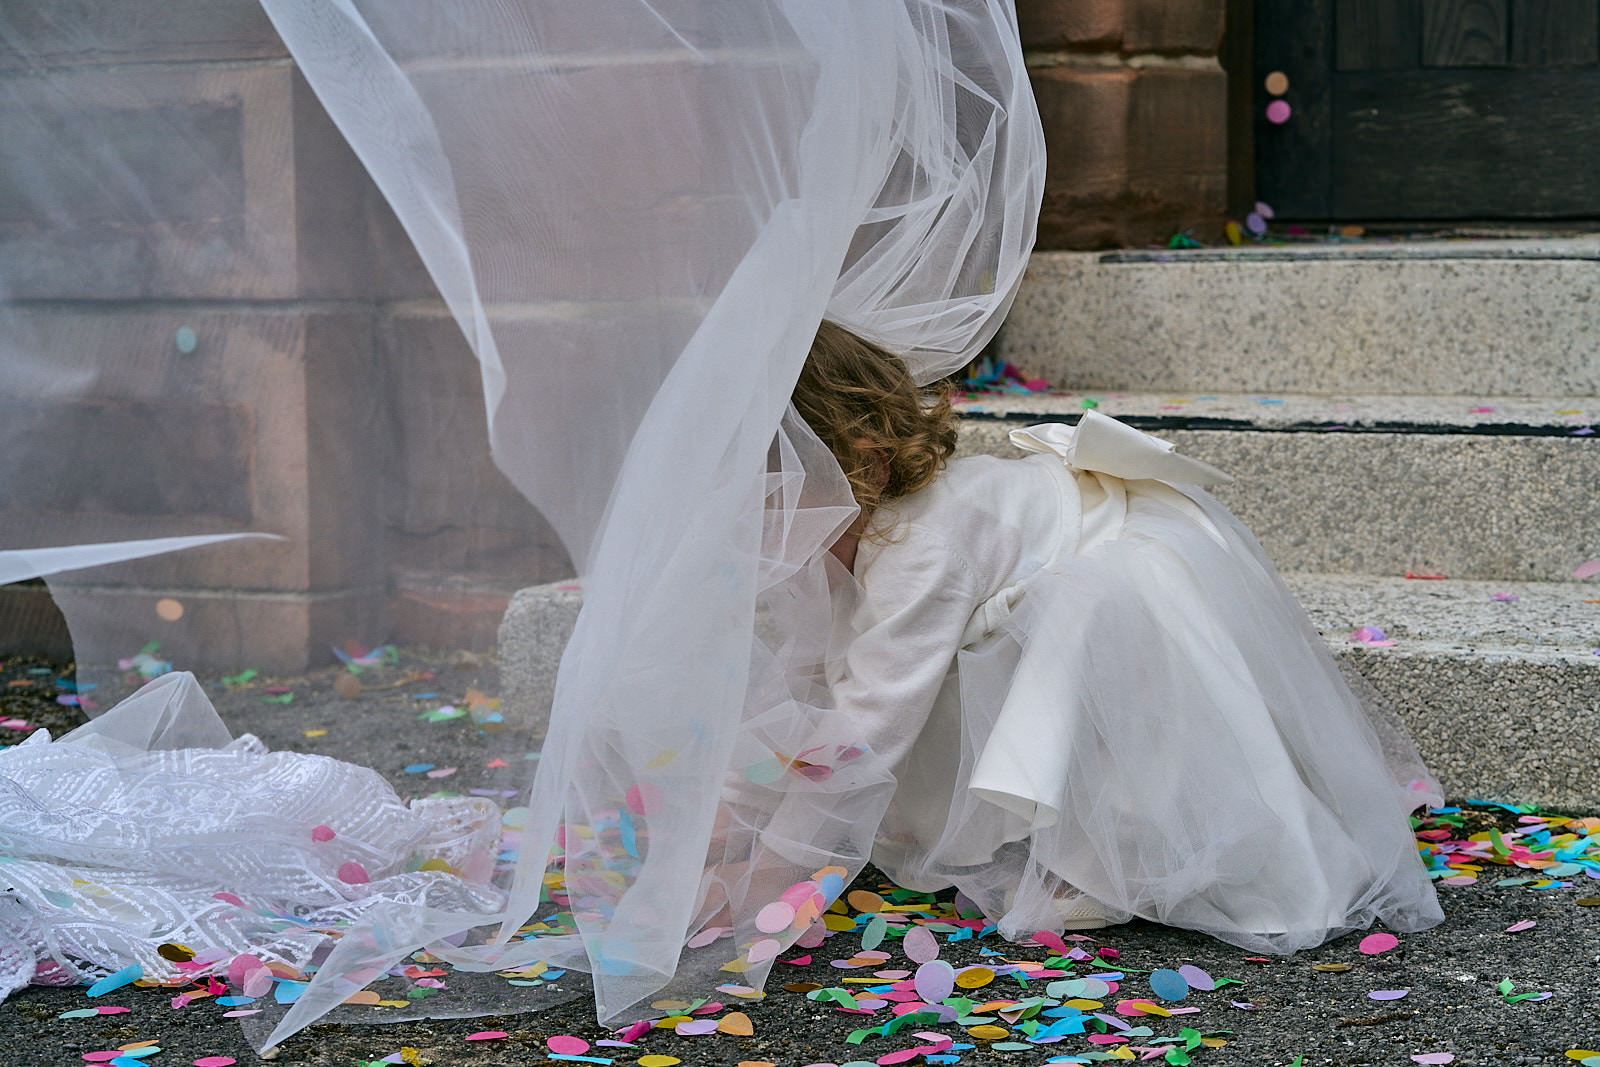 flower girl collects confetti and caught in veil